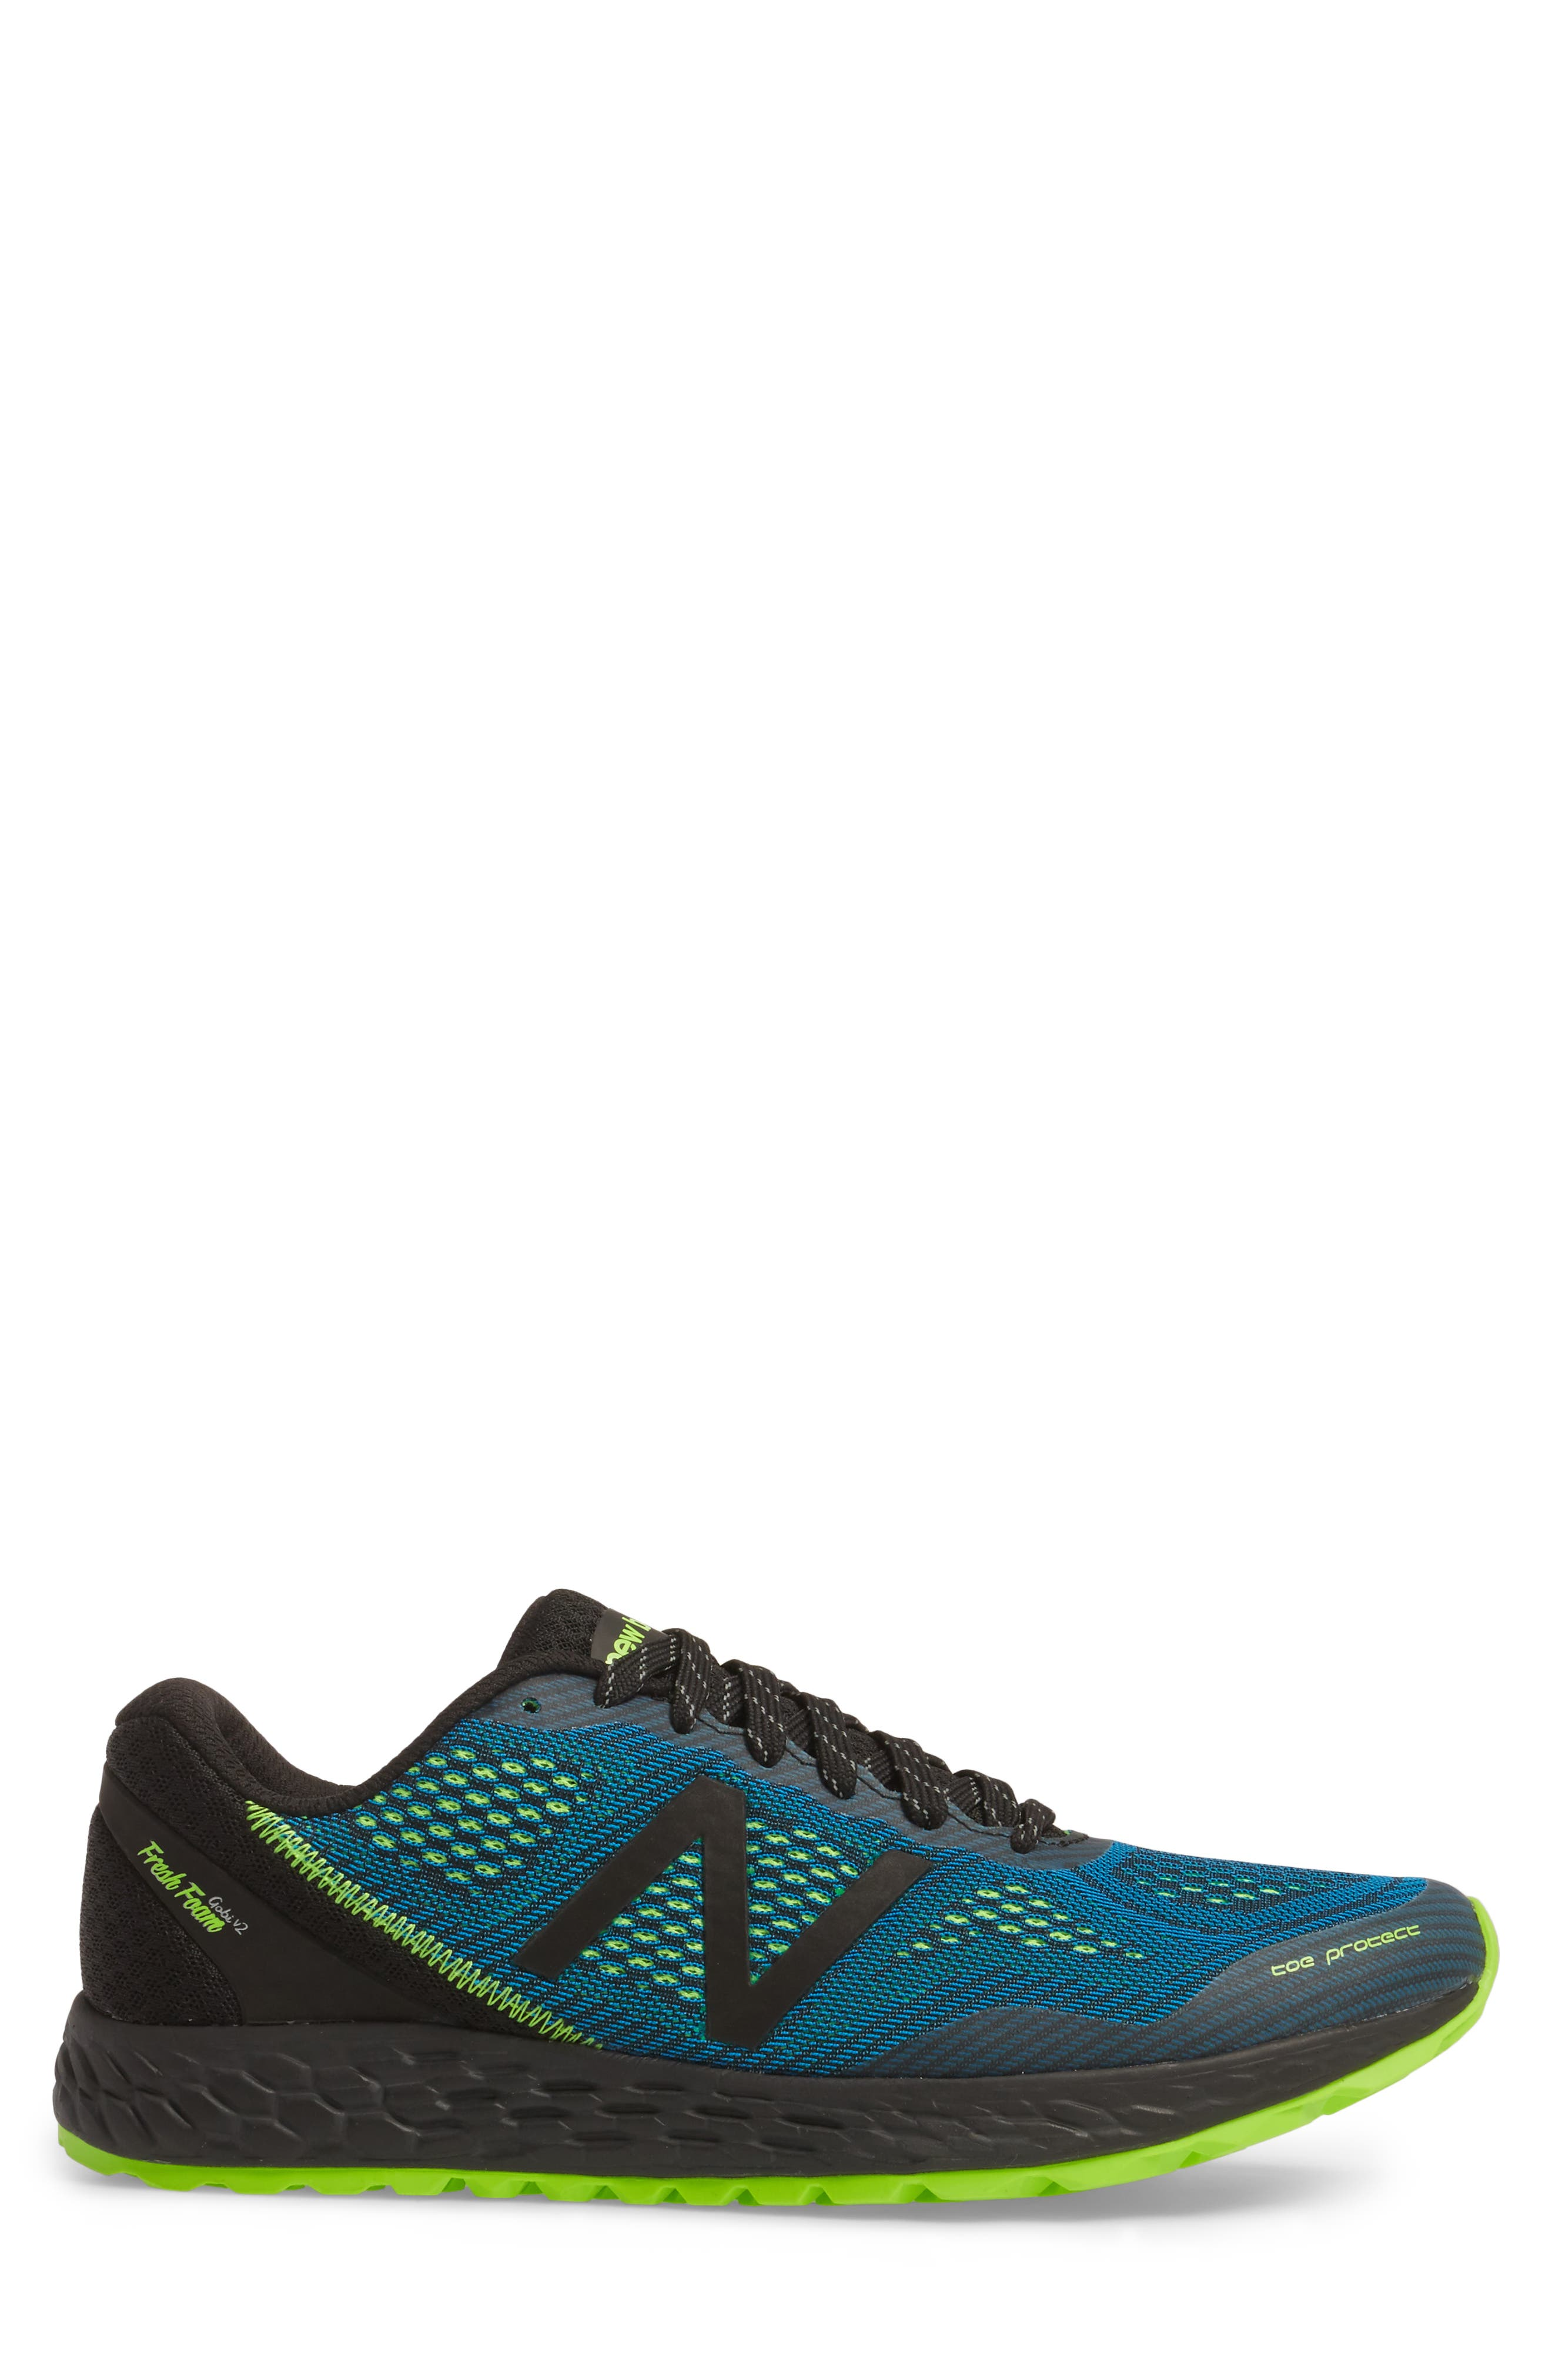 Fresh Foam Gobi V2 Trail Running Shoe,                             Alternate thumbnail 2, color,                             Black/ Blue